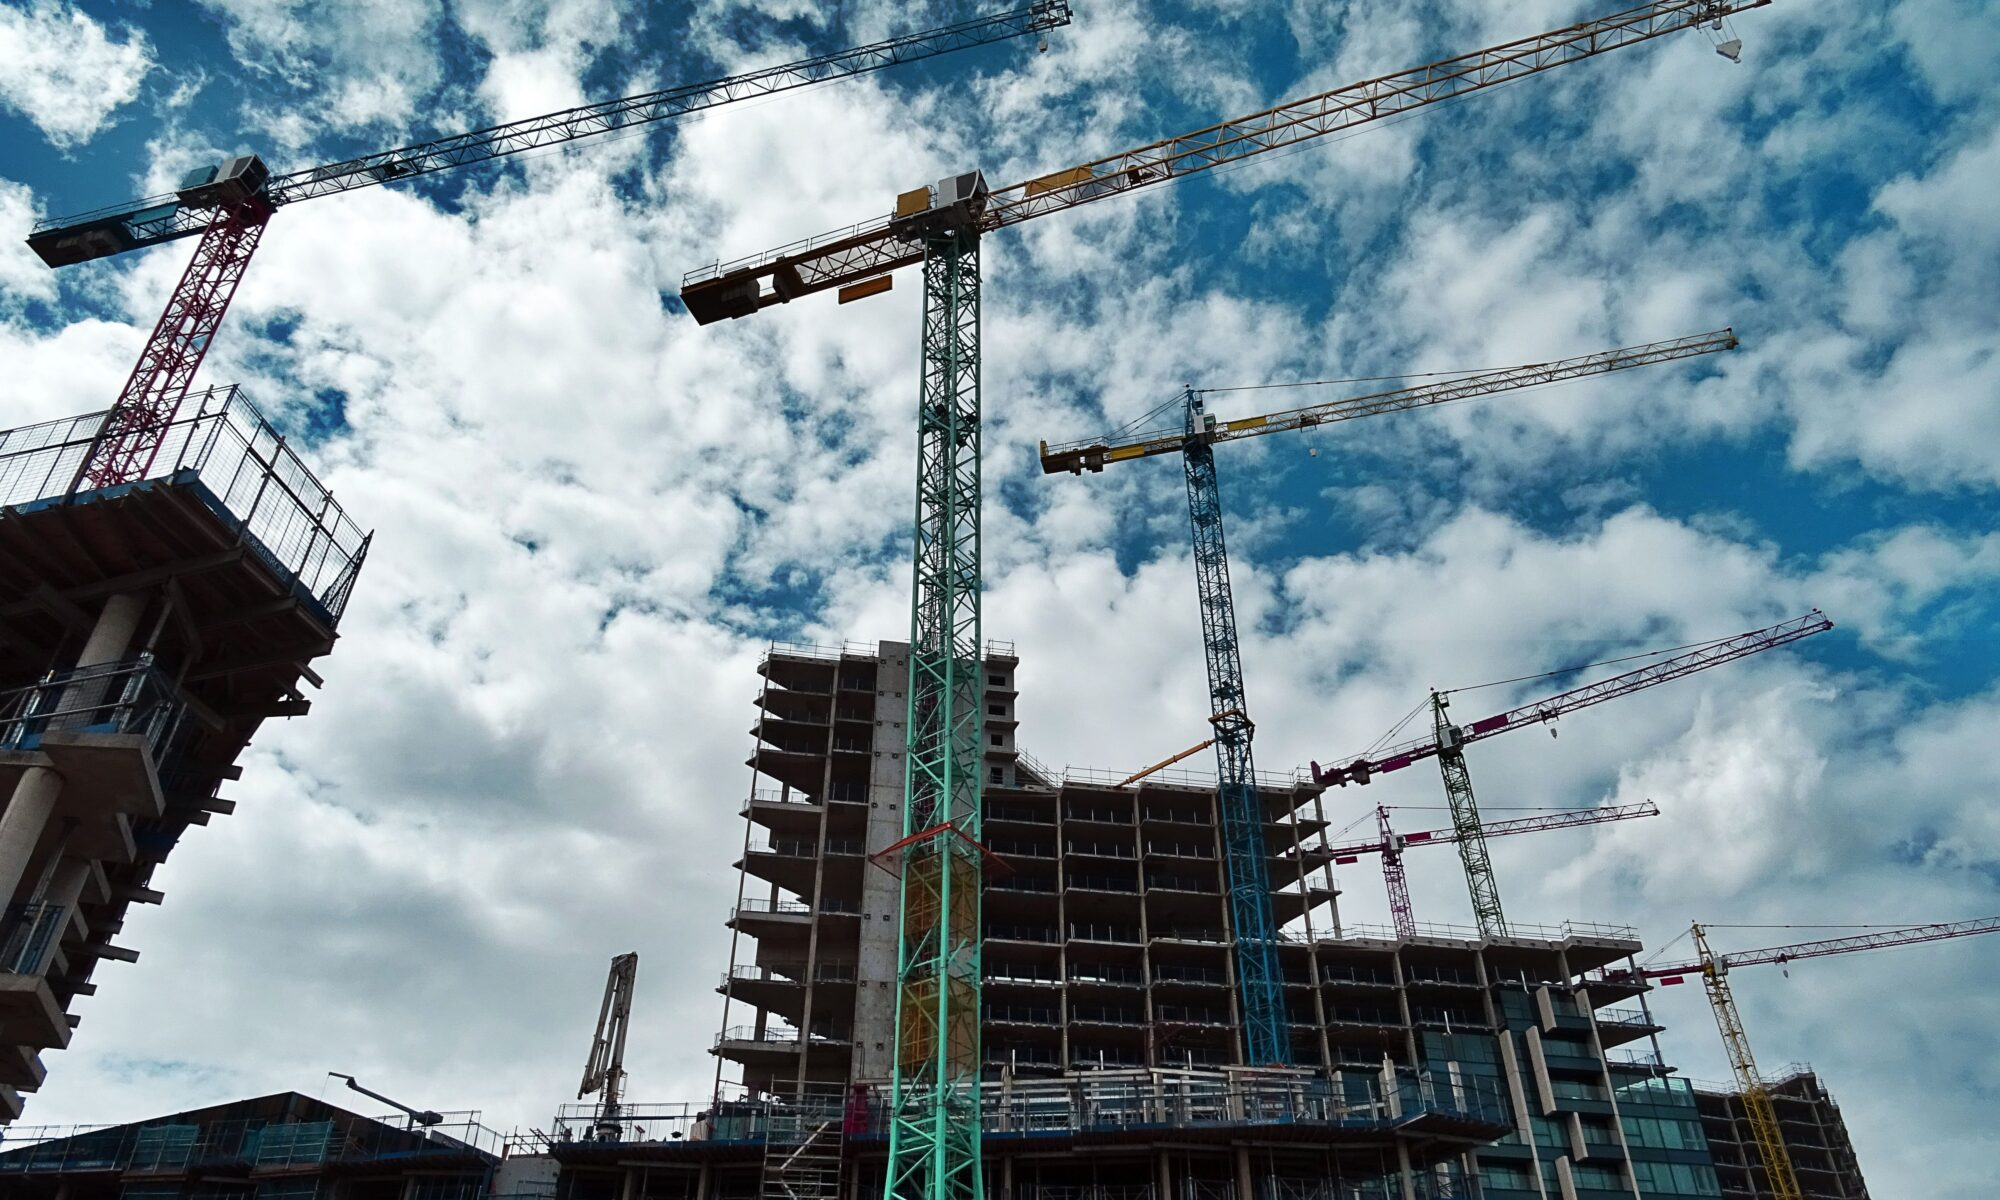 Convention center building on the rise